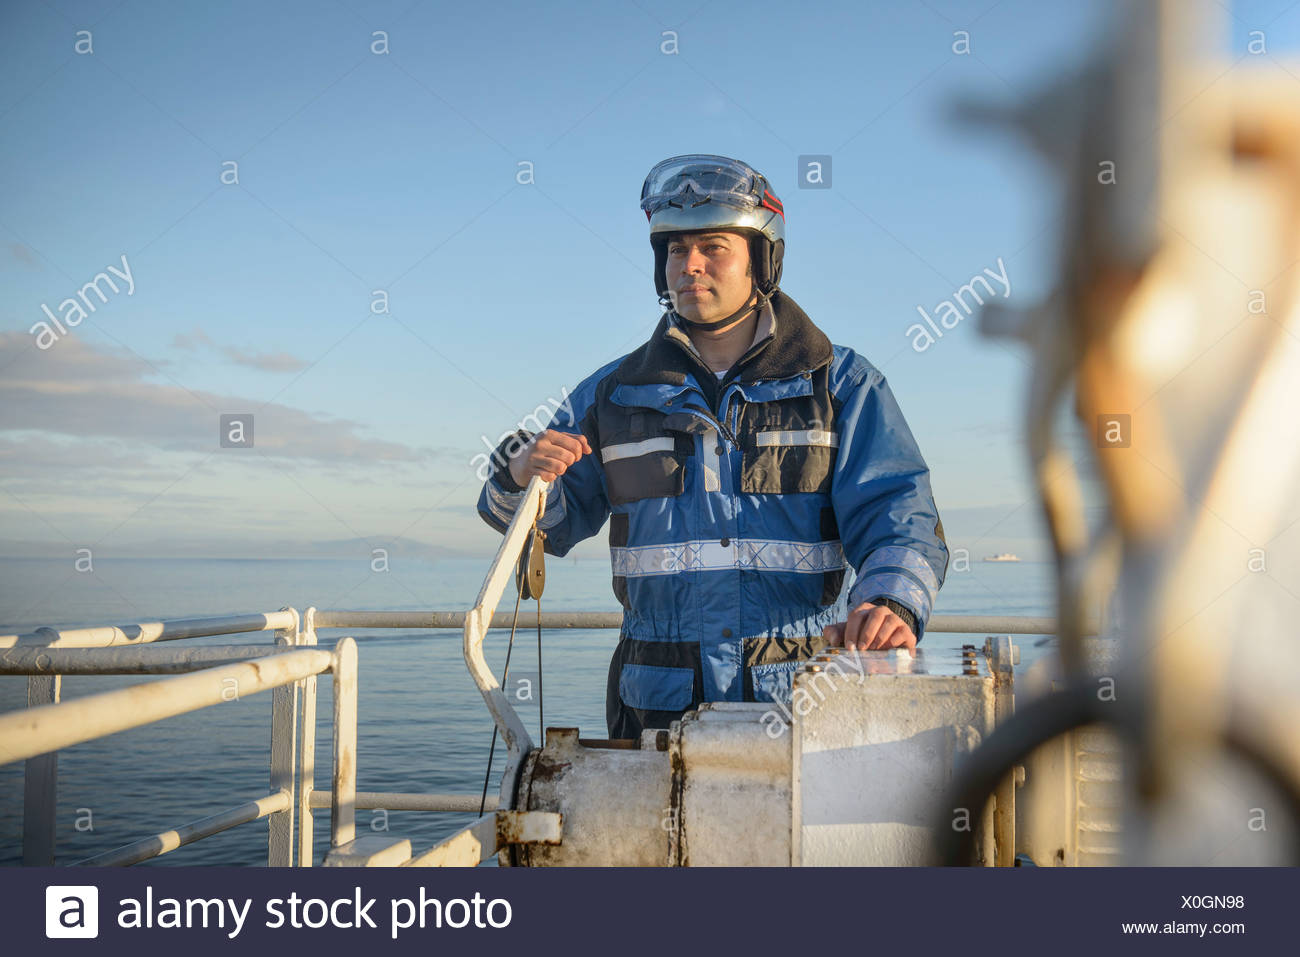 Student at rescue boat training - Stock Image